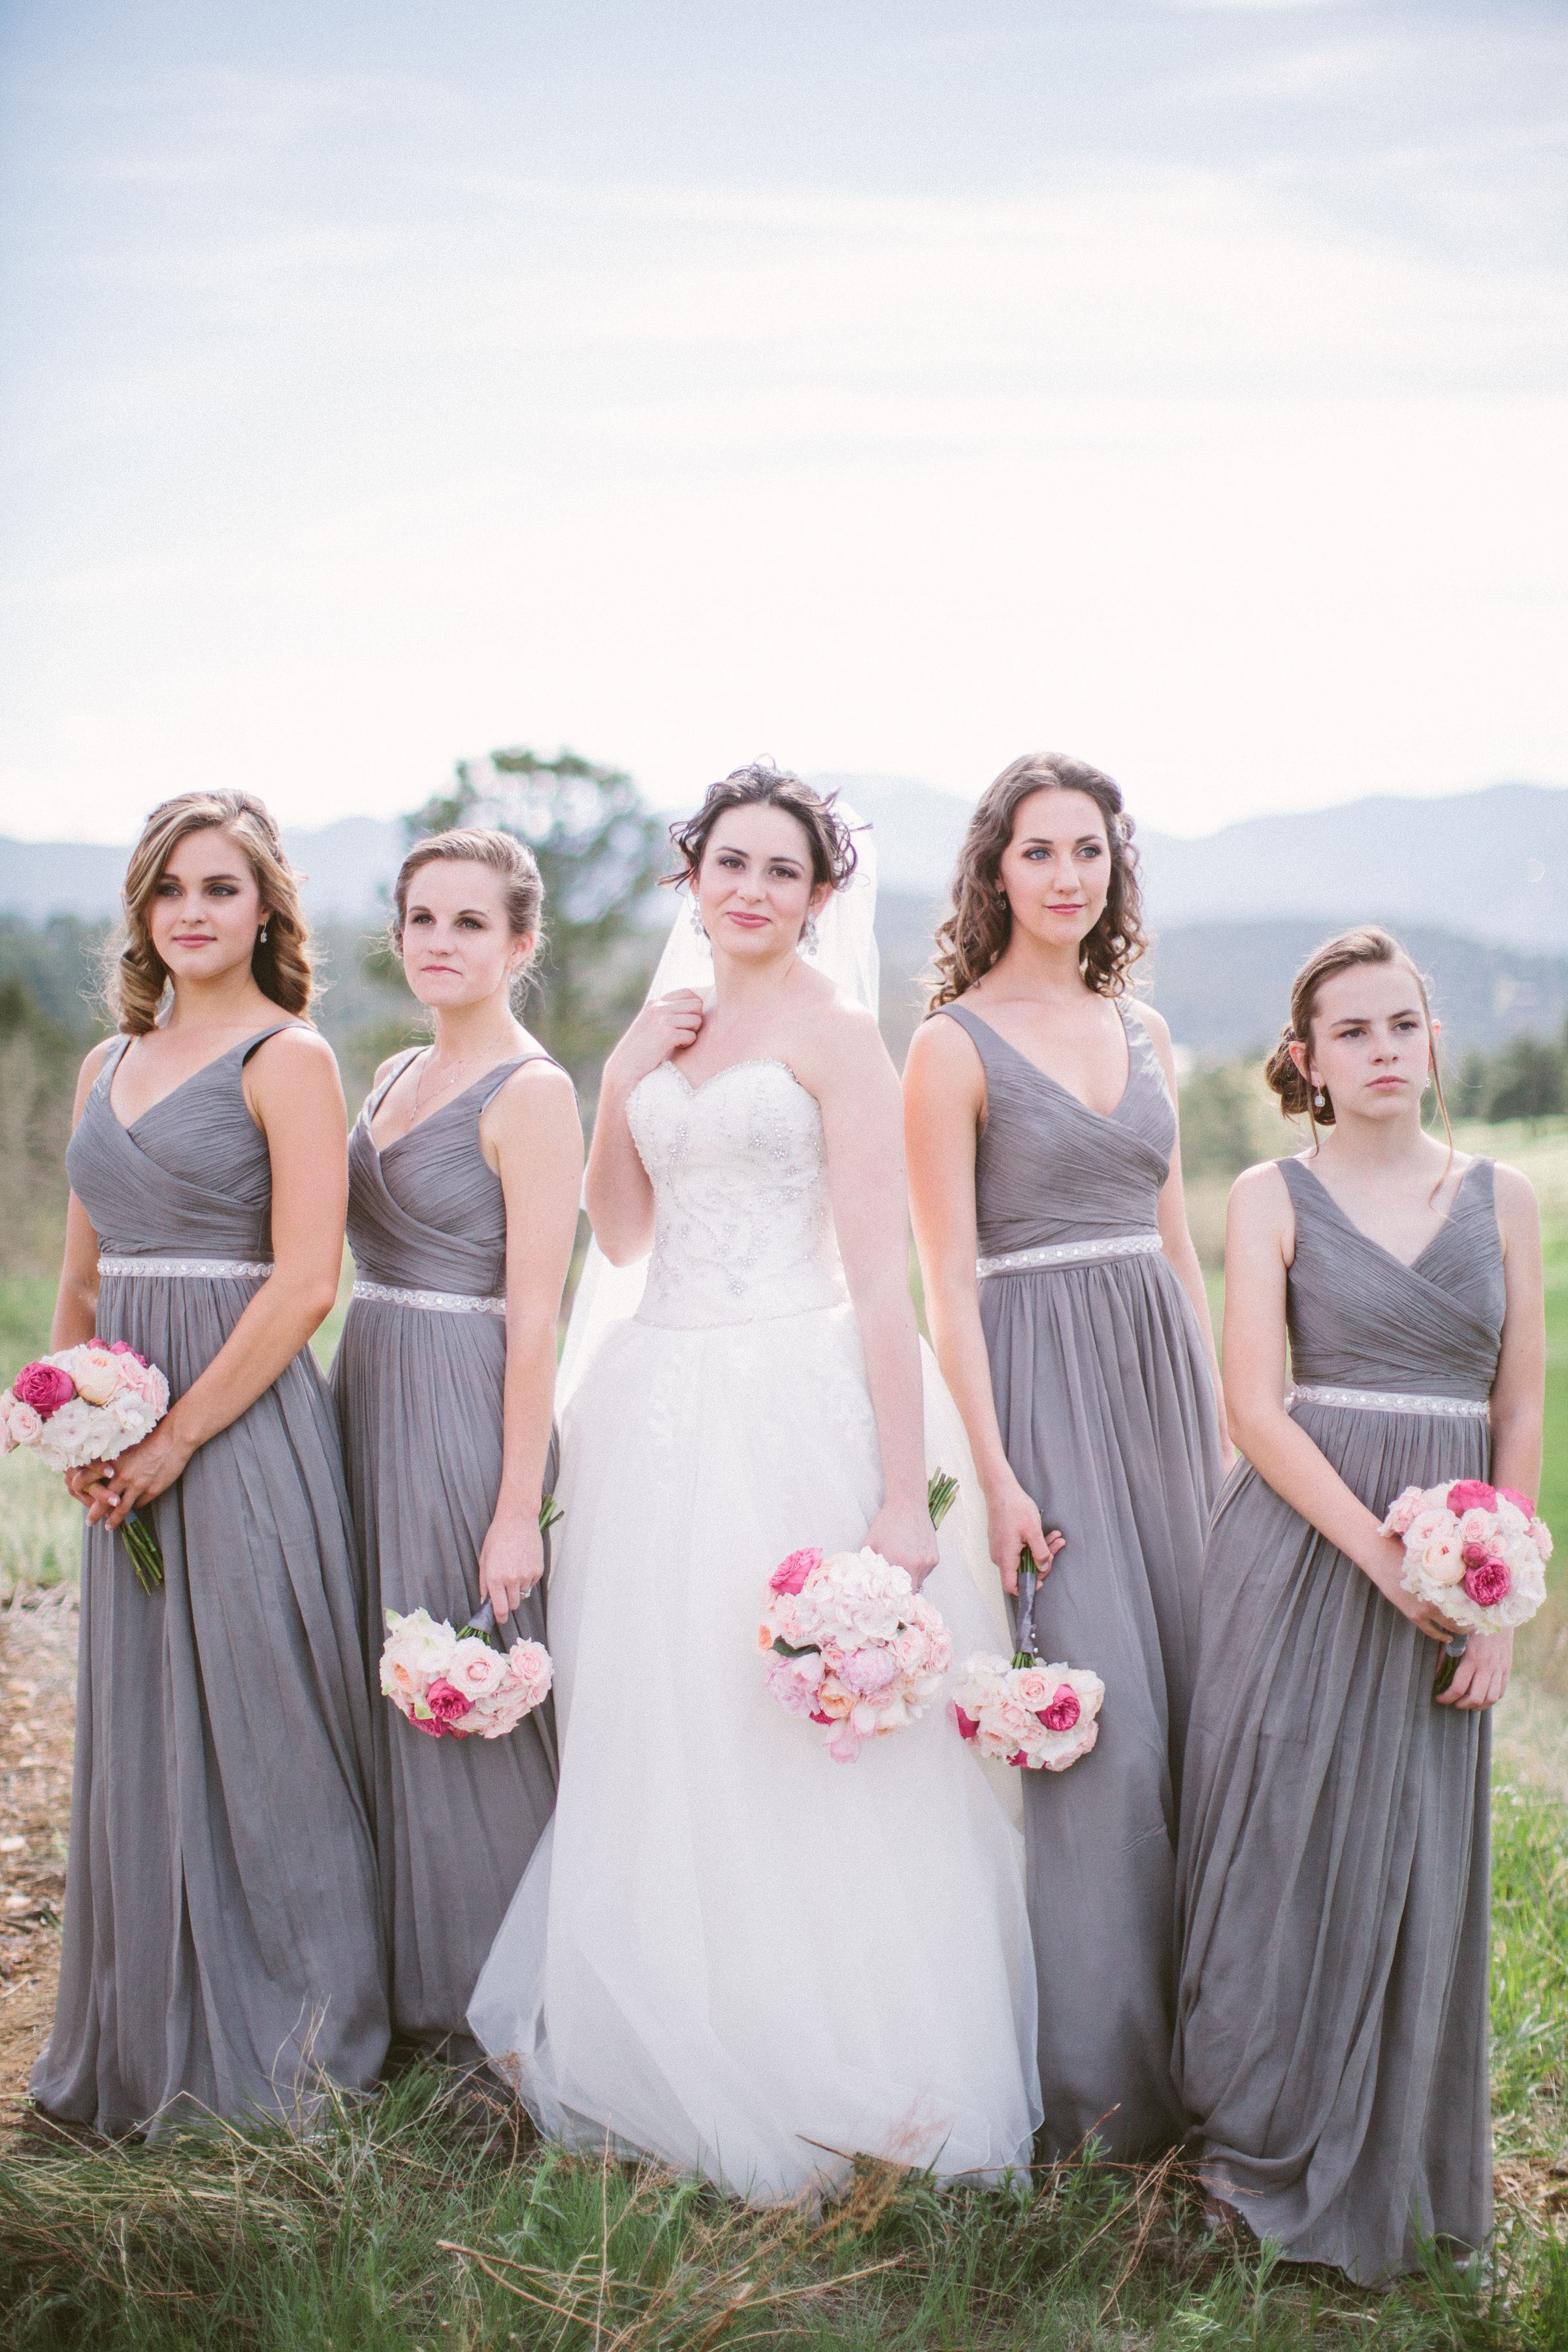 Grey max bridesmaids dresses from jcrew styled with pink bouquets grey max bridesmaids dresses from jcrew styled with pink bouquets very chic and classic ombrellifo Image collections